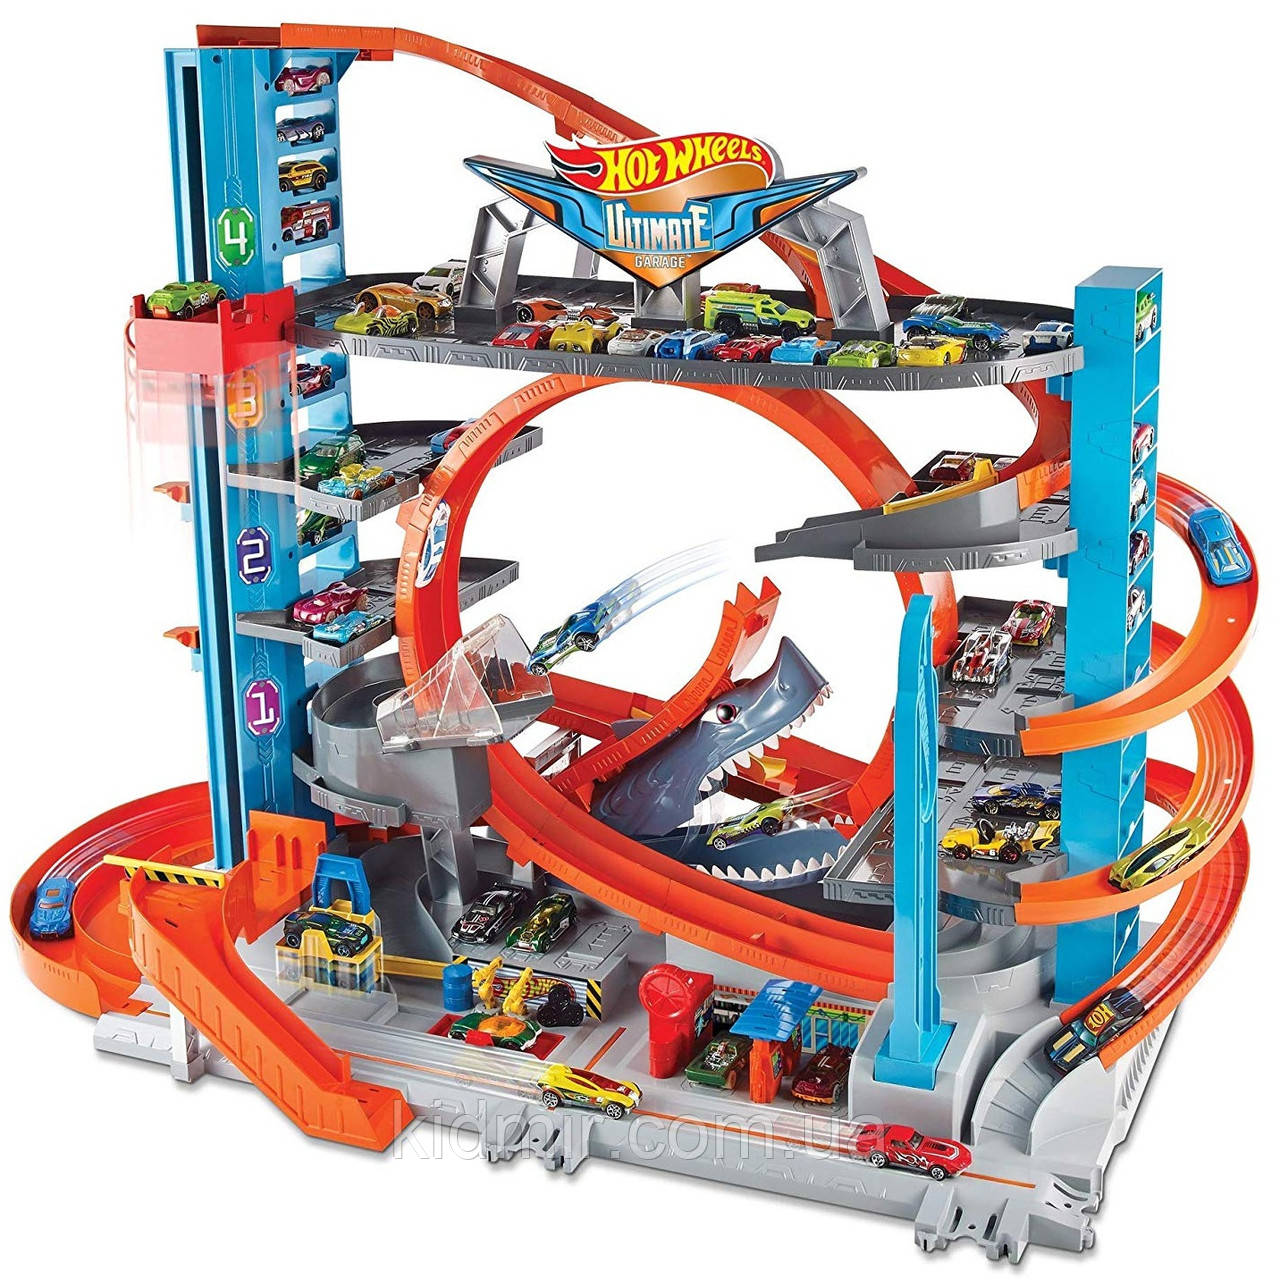 Хот Вилс Городской Гараж с Акулой Hot Wheels City Ultimate Garage FTB69